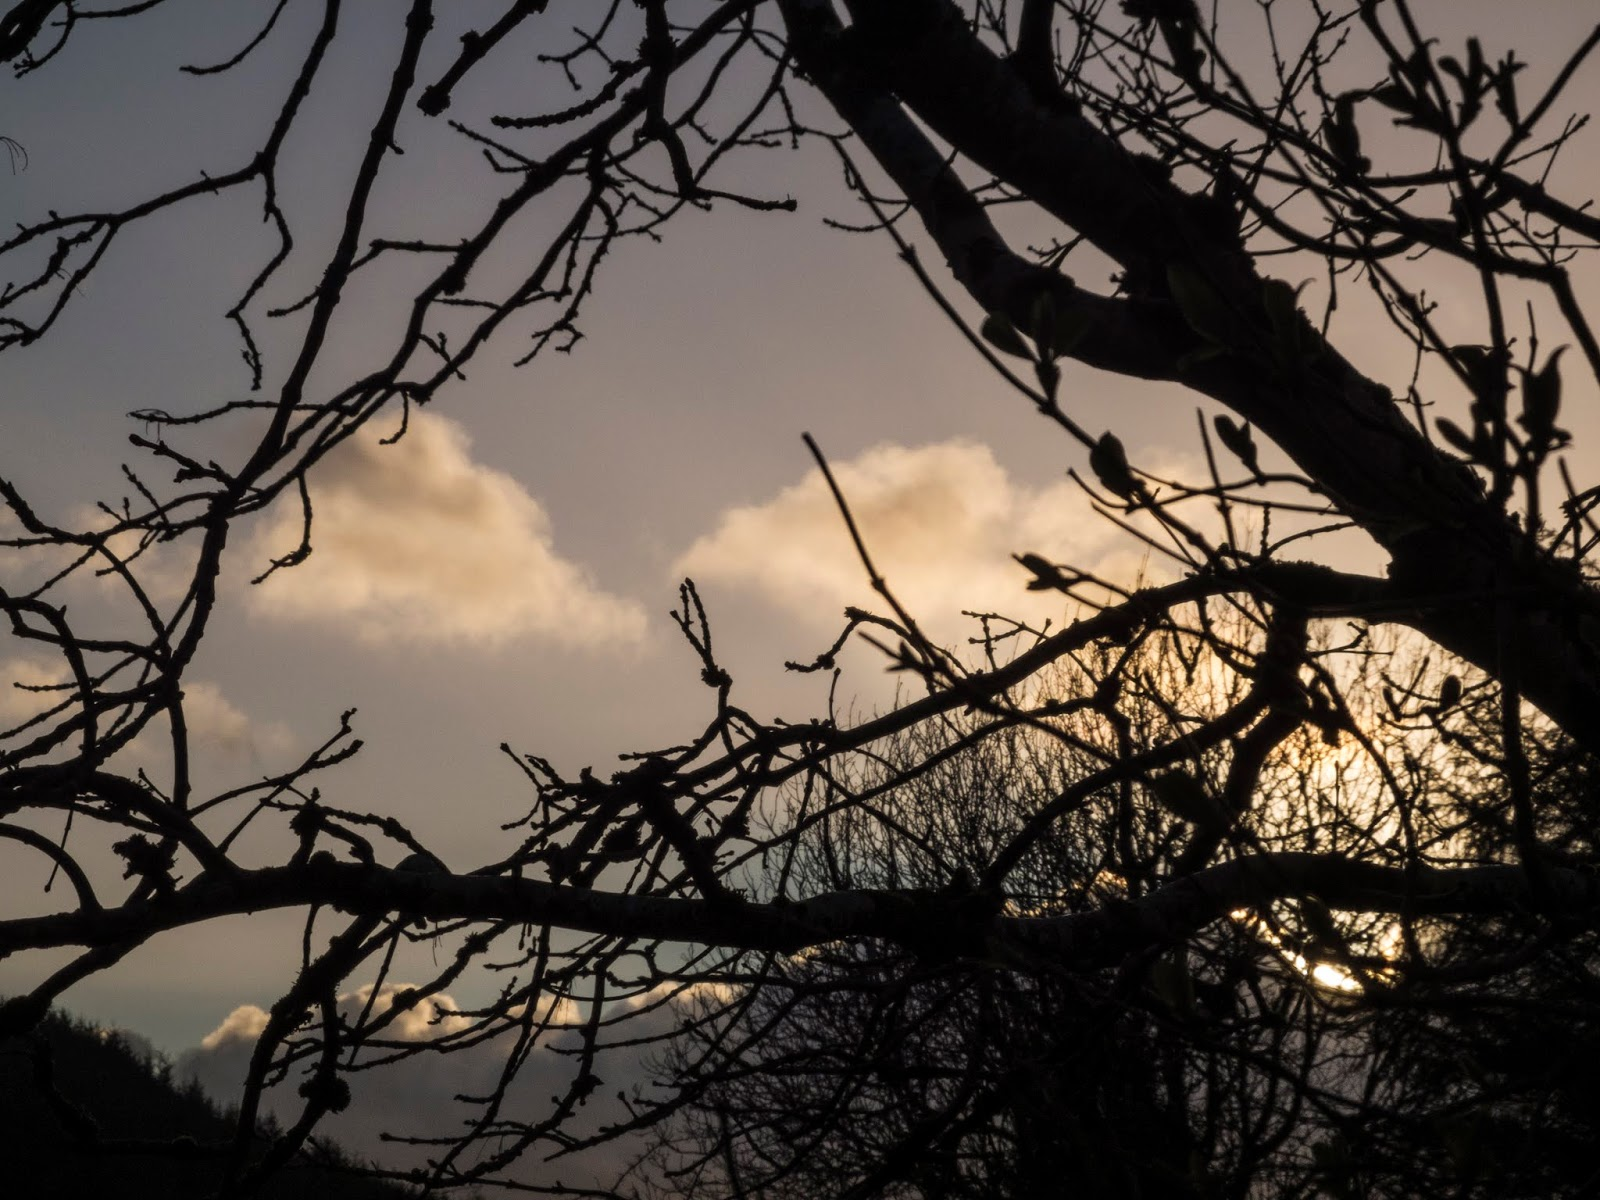 A silhouette of a tree trunk and branches with sunset clouds in the background.